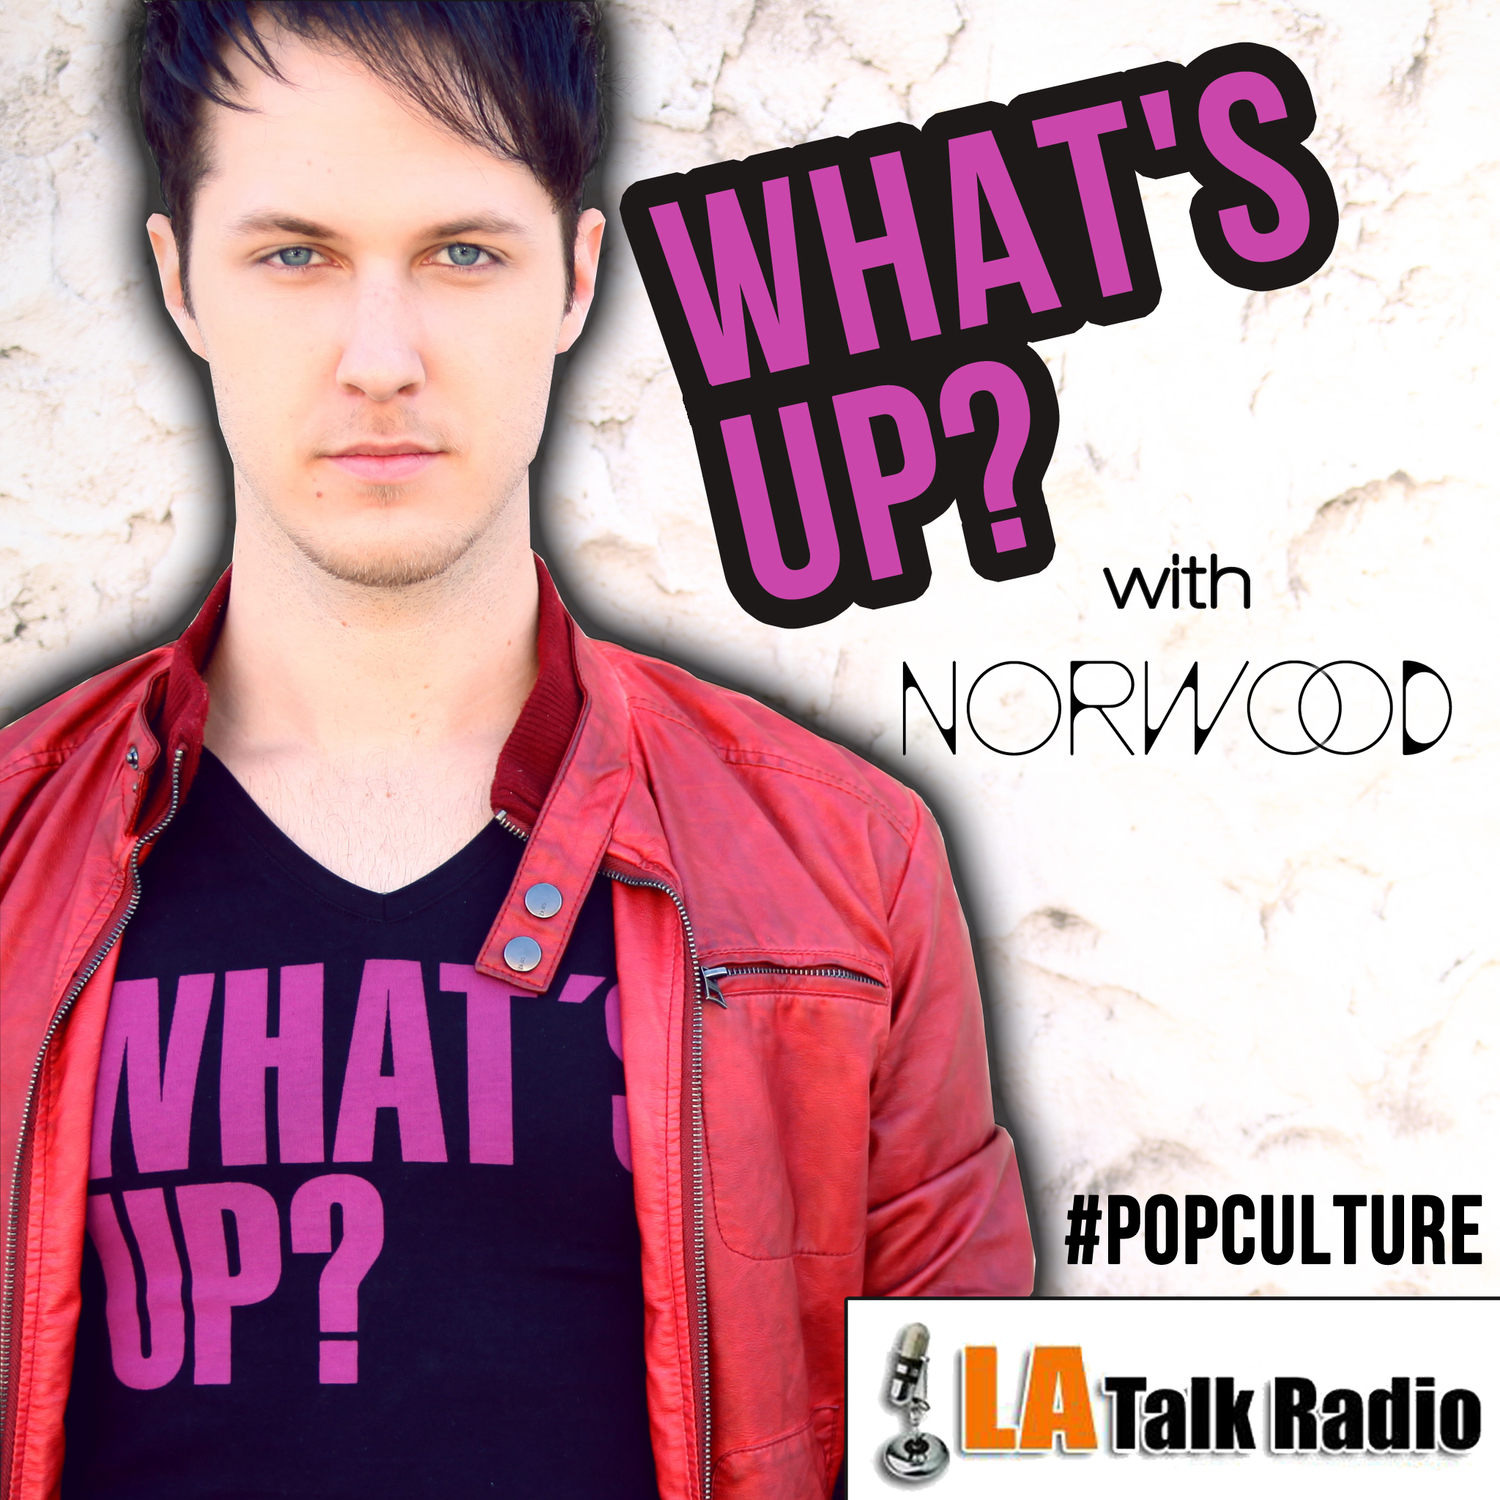 What's Up? with Norwood